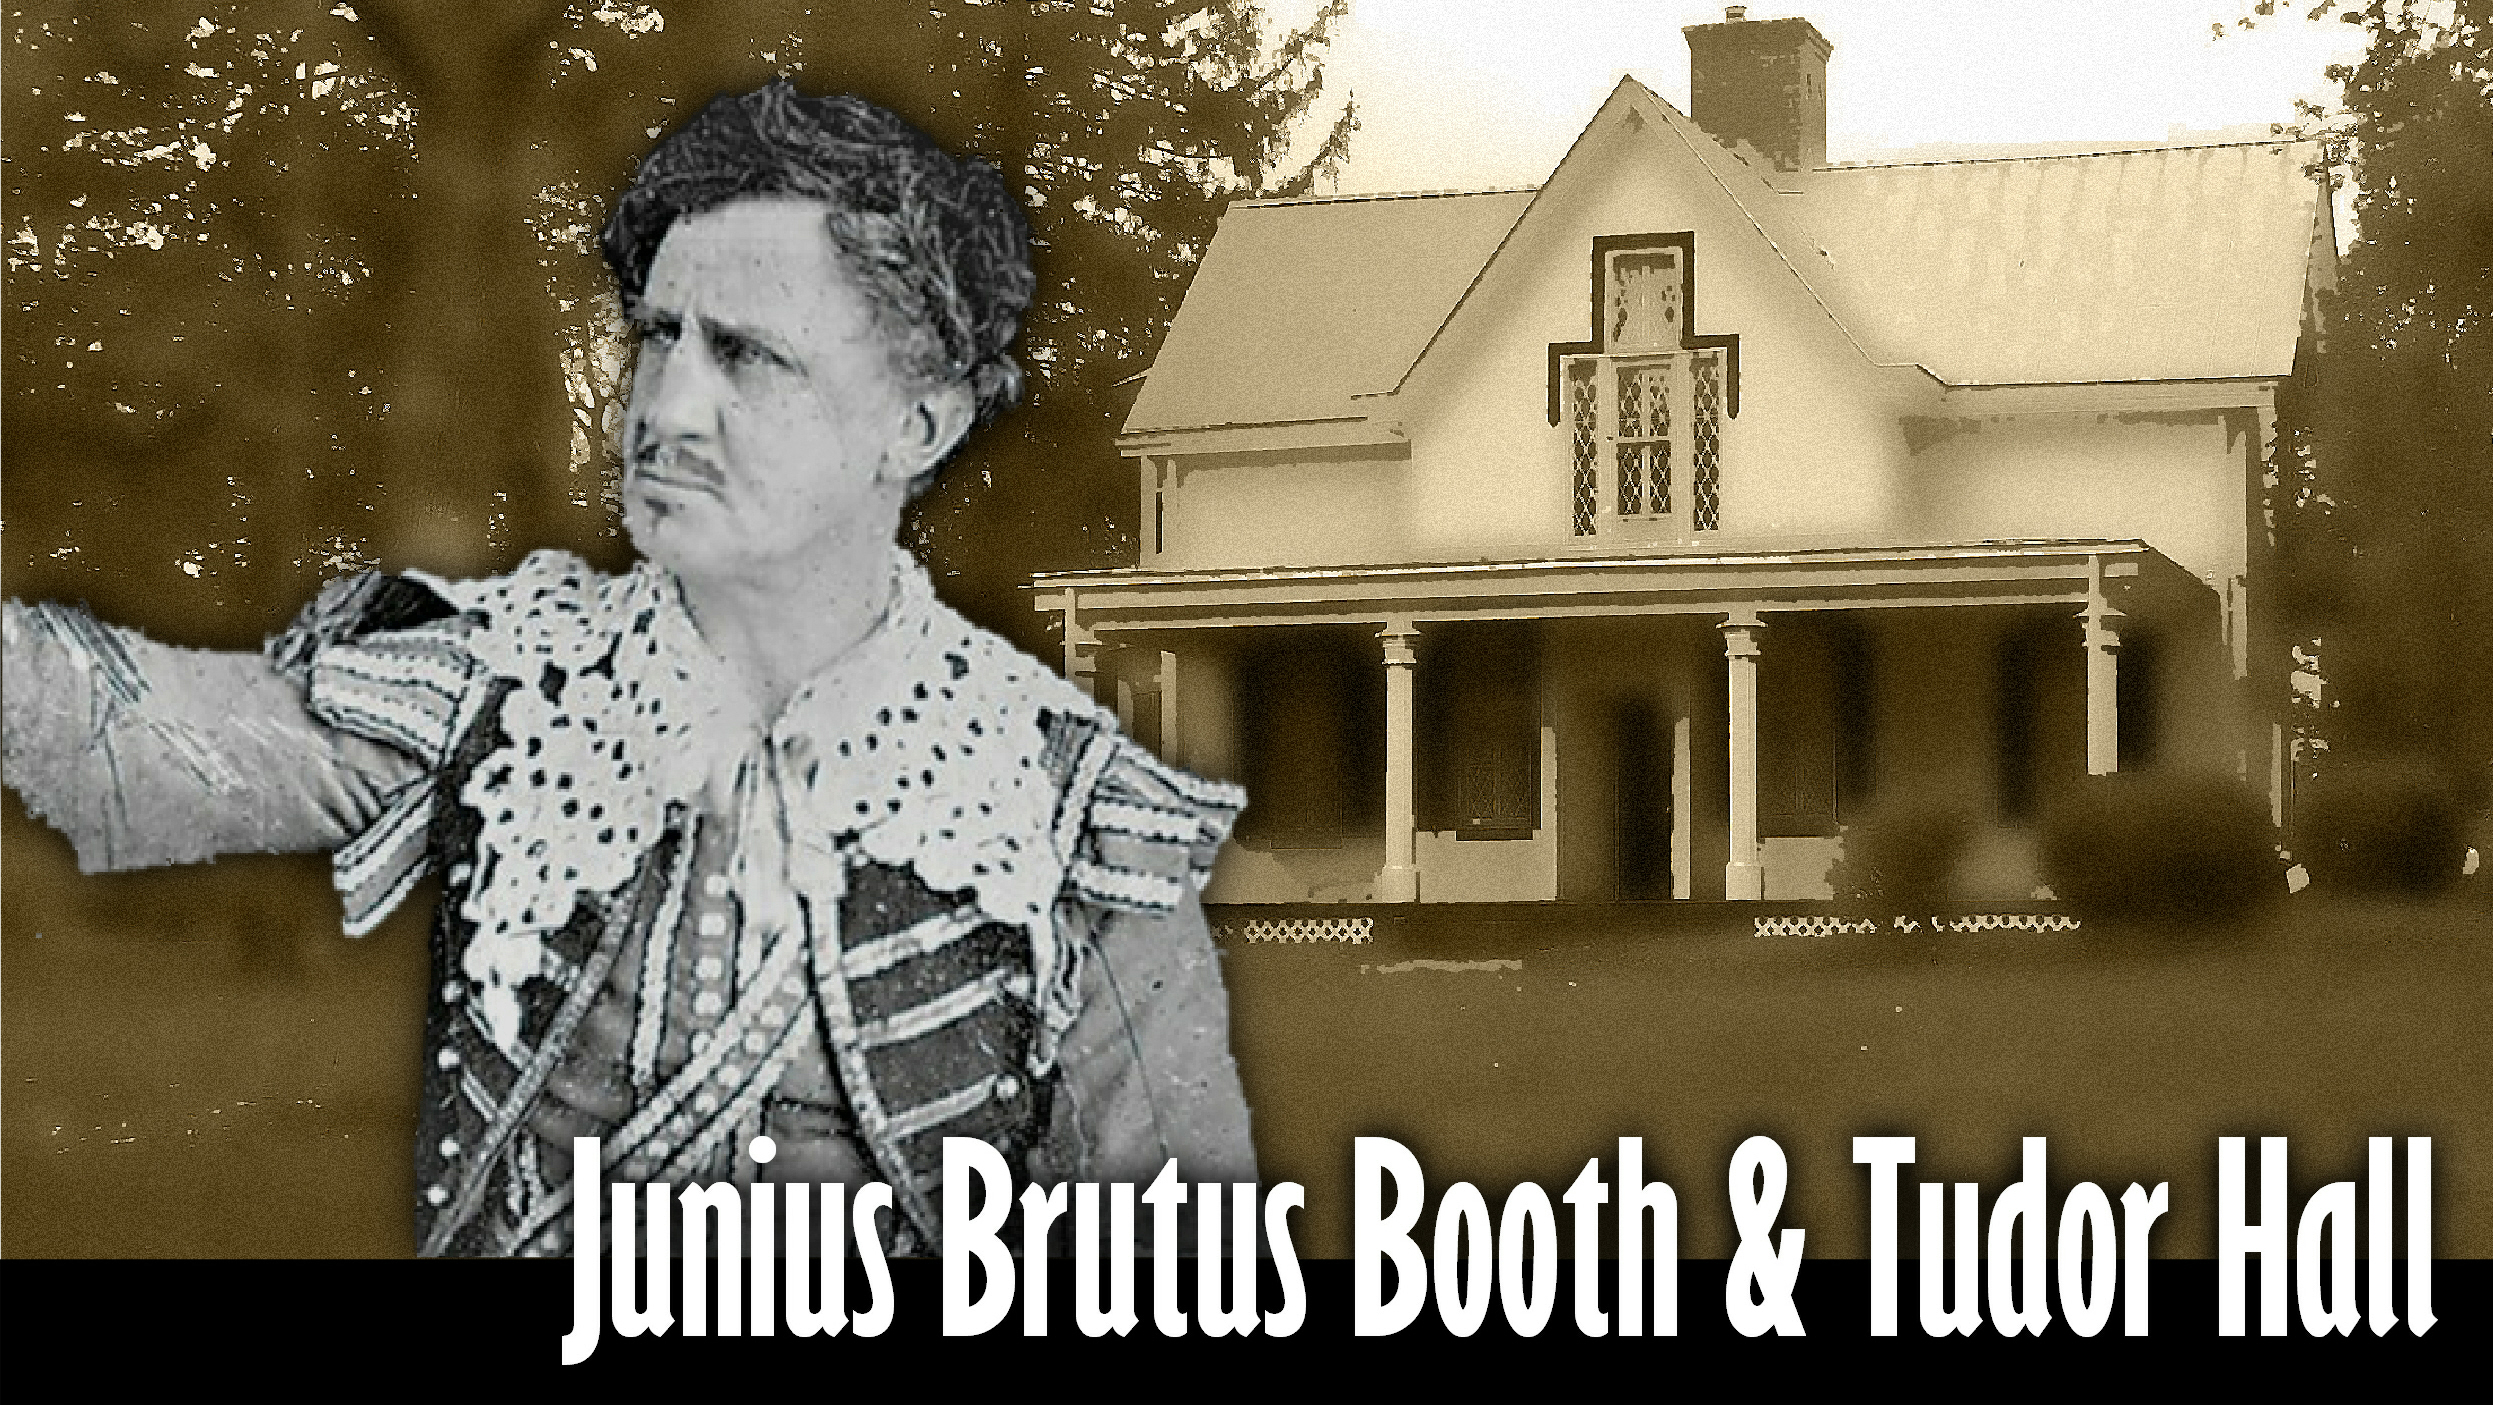 Junius Brutus Booth Sr, father of John Wilkes Booth